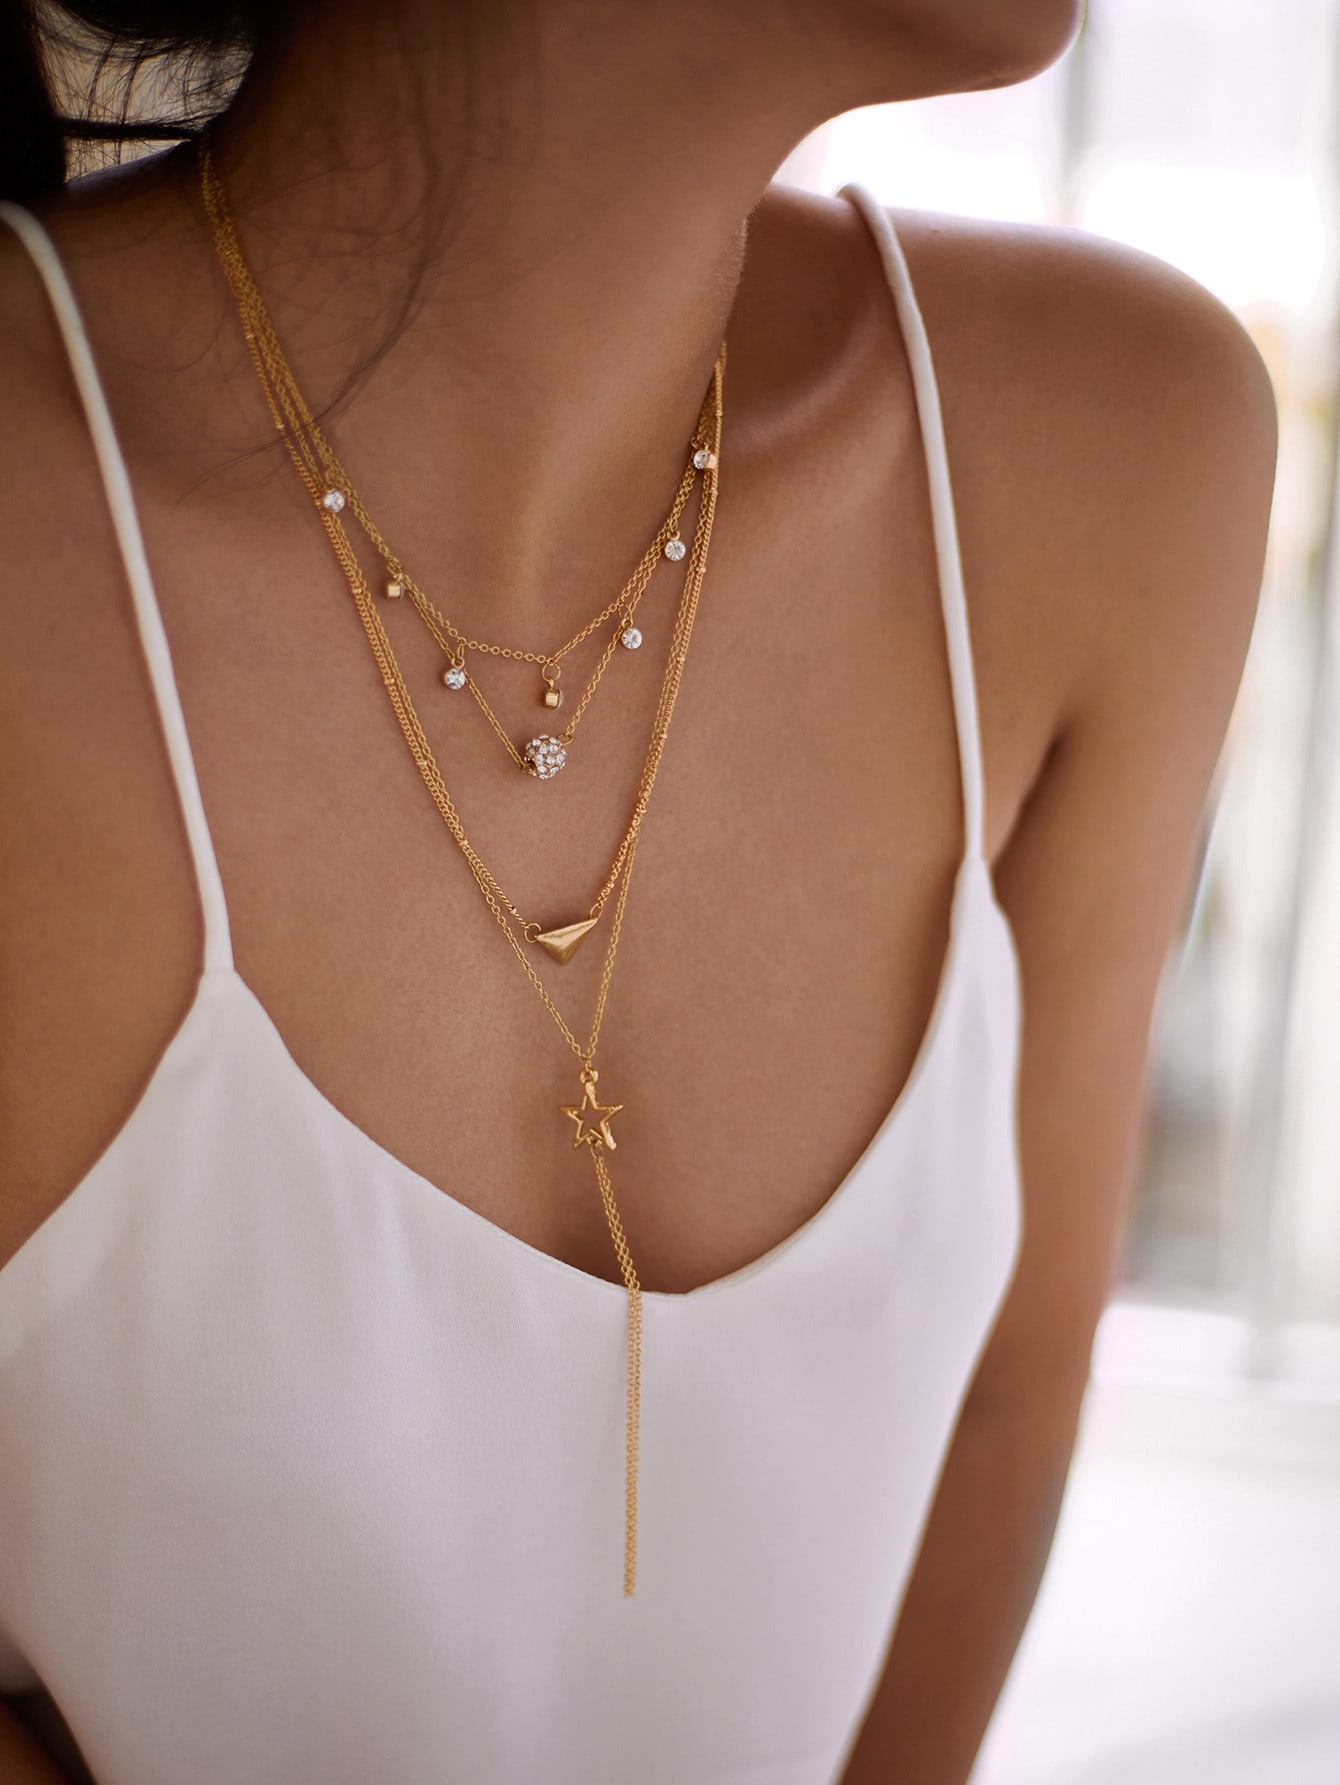 Star & Triangle Pendant Layered Chain Necklace triangle fringed paillette pendant necklace